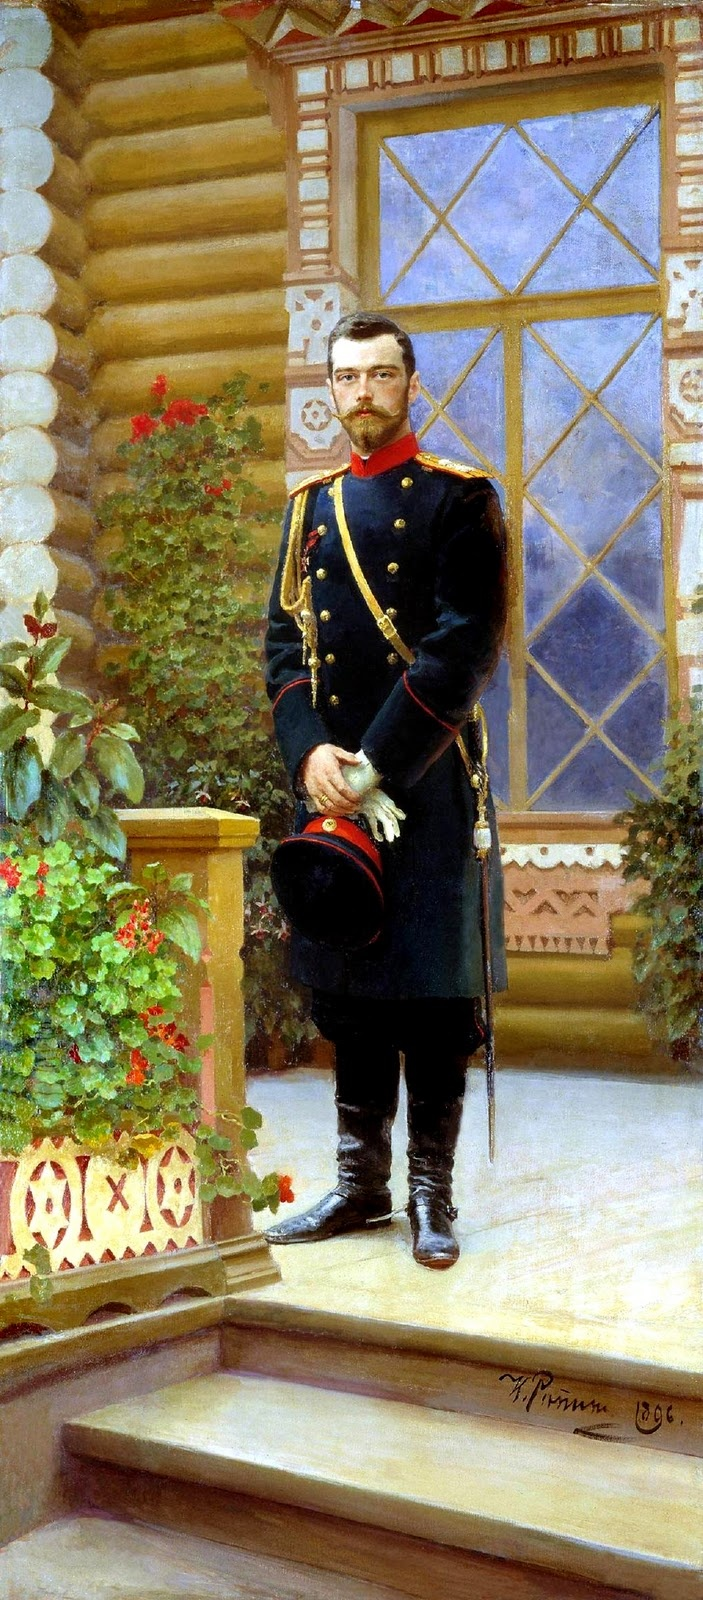 One of my favorite (if not my favorite) historical figures, Tsar Nicholas II, by one of my favorite painters, Ilya Repin